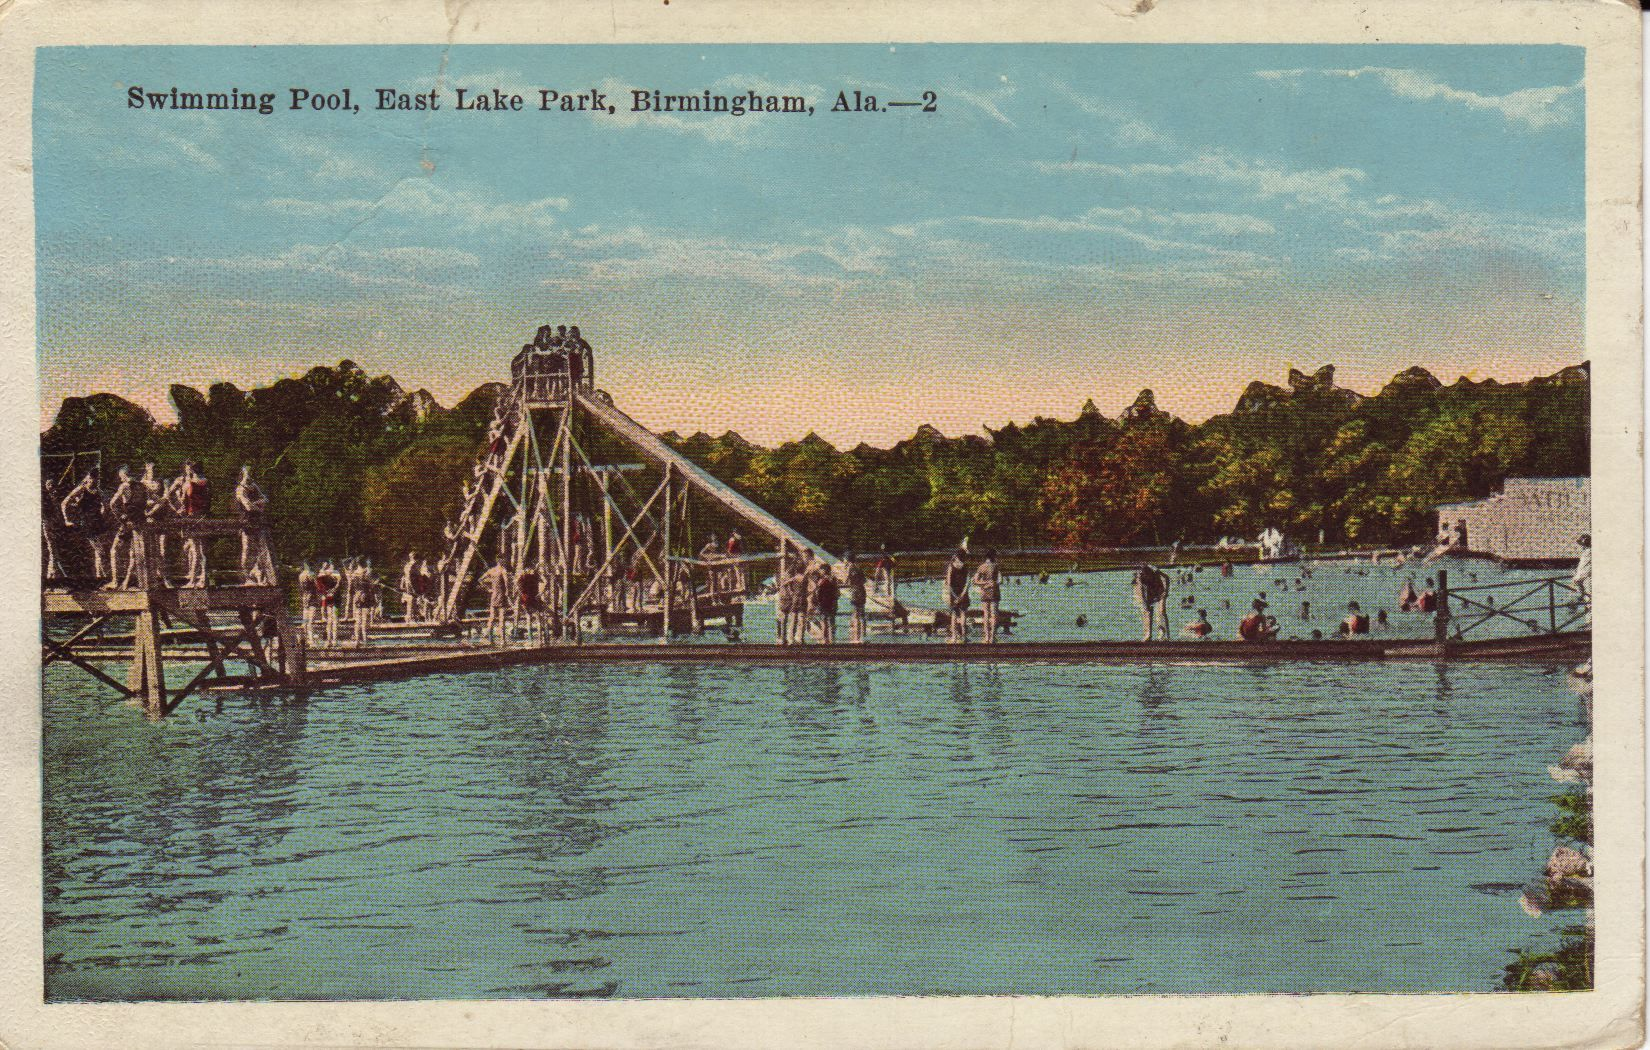 Alabama birmingham east lake park swimming pool historic swimming pools pinterest University of birmingham swimming pool